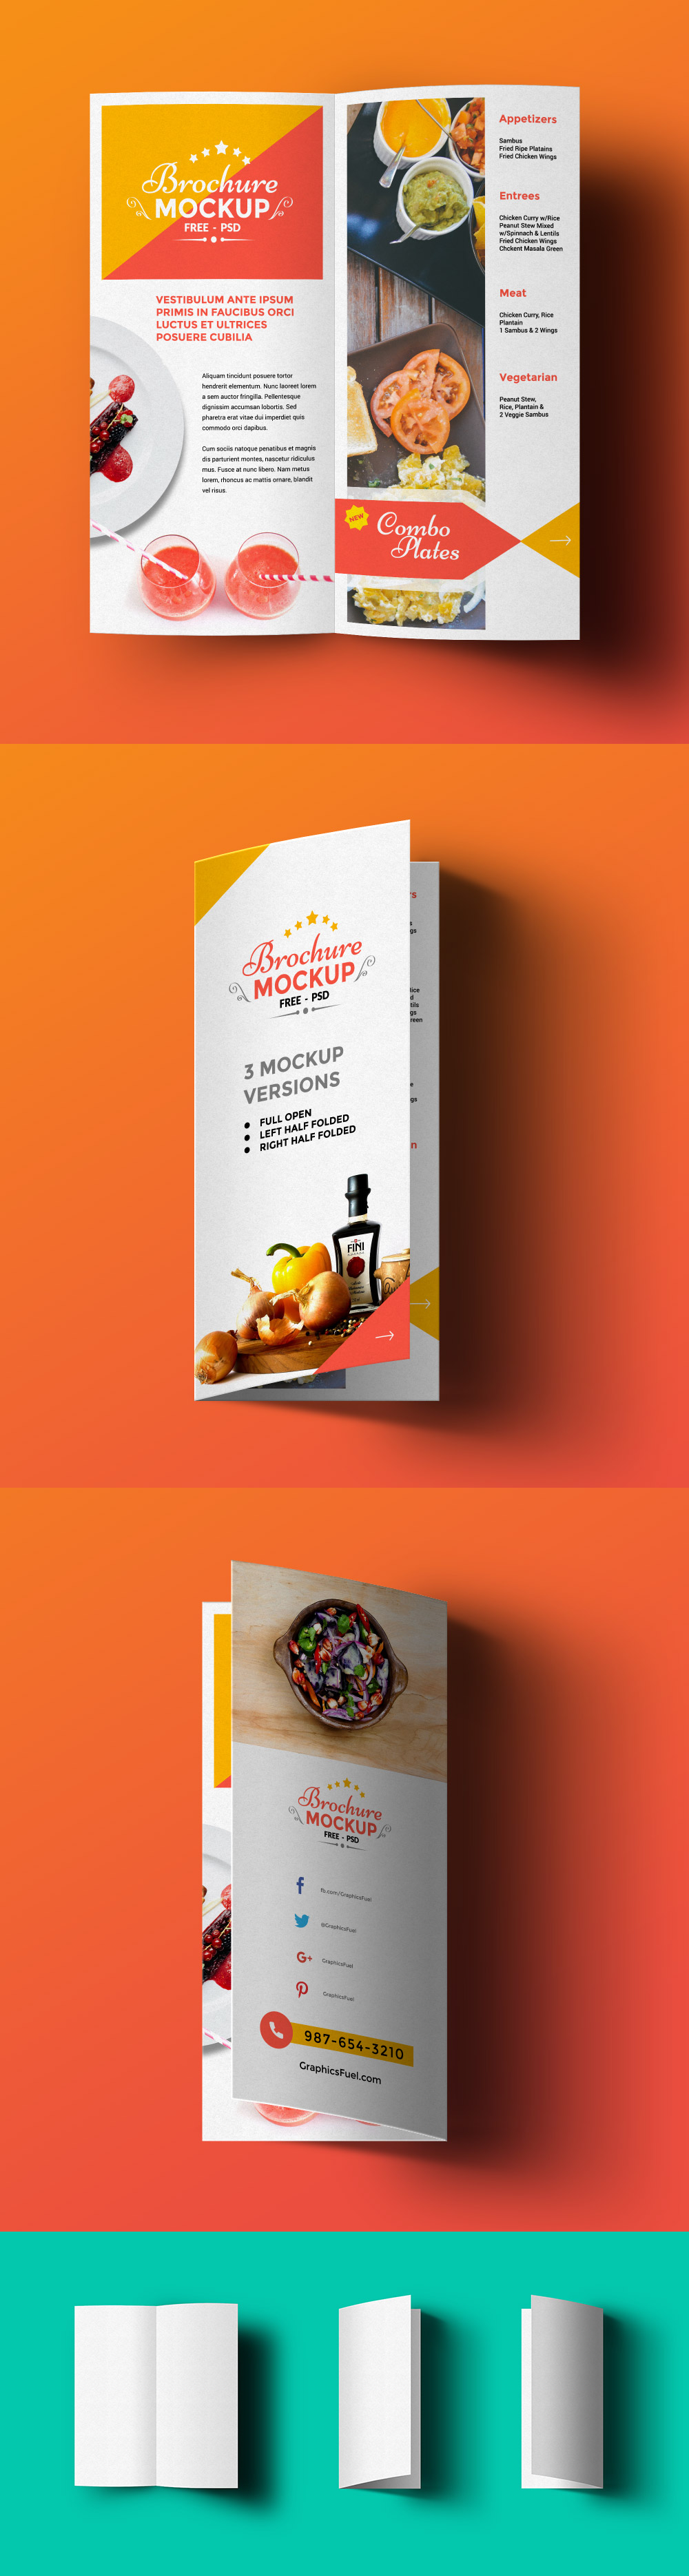 Free bi fold brochure mockup graphicsfuel for Brochure design psd templates